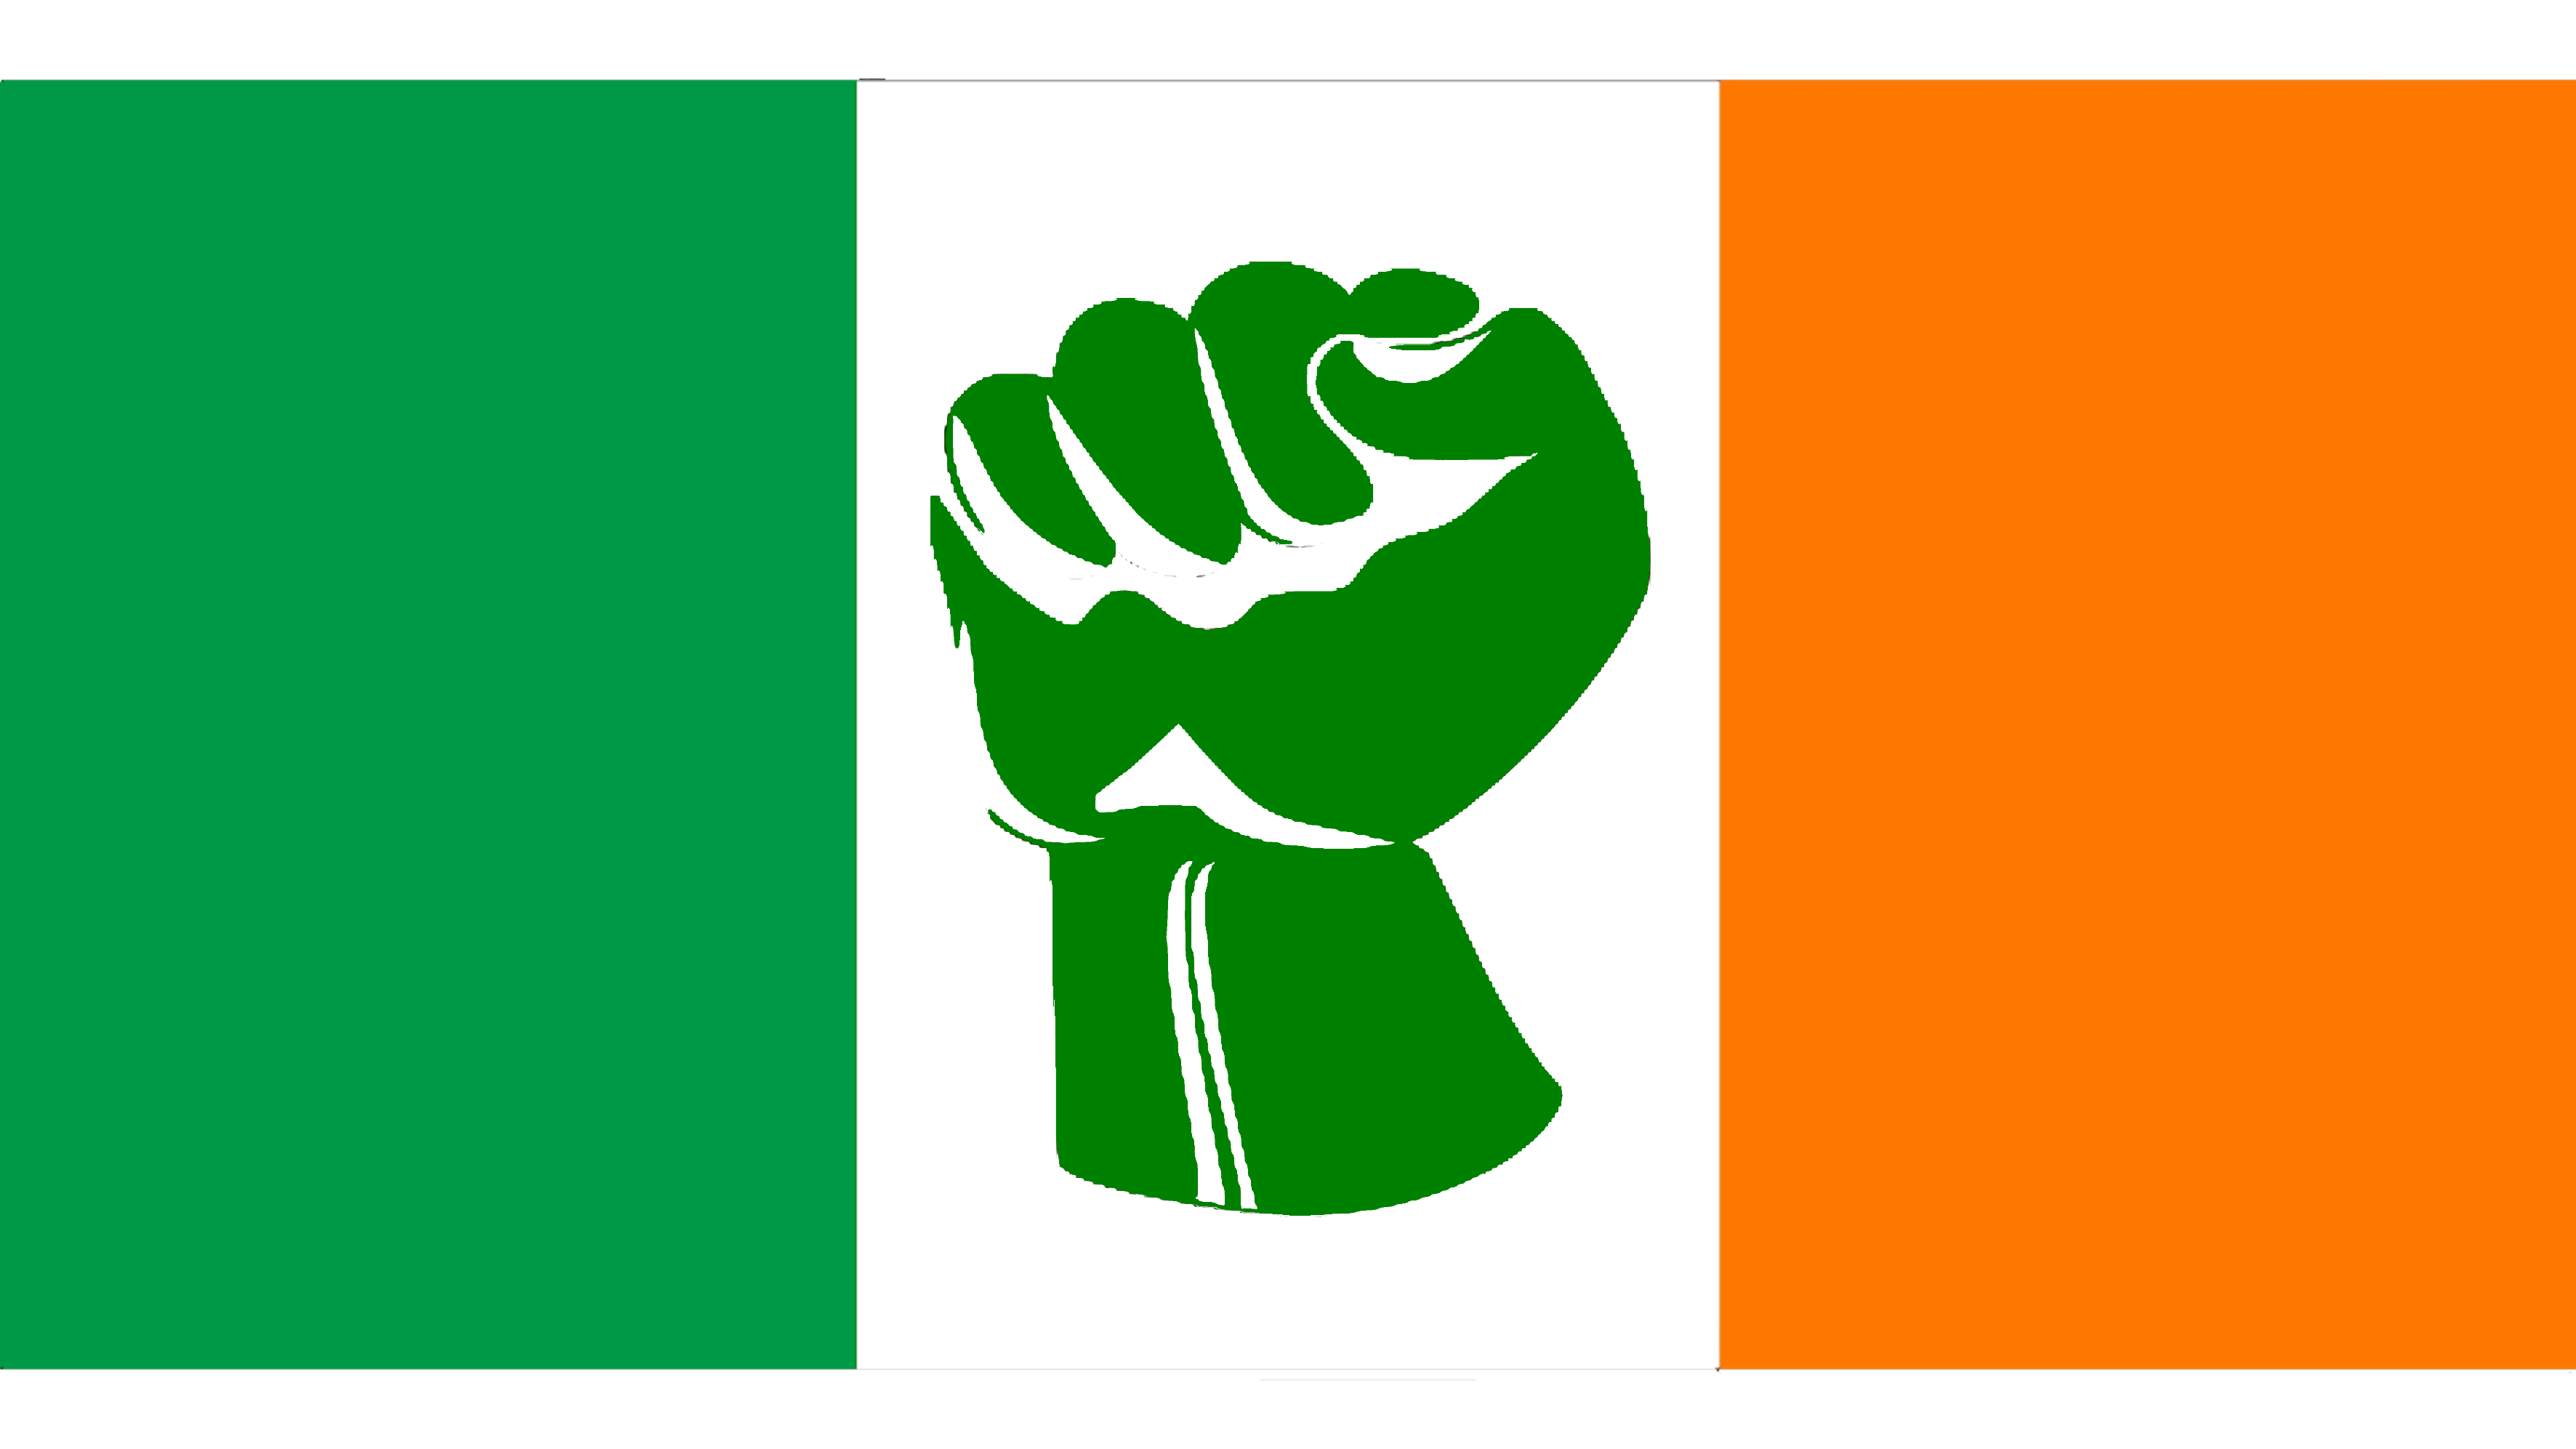 Ireland Ira Power | Free Images at Clker.com - vector clip ...